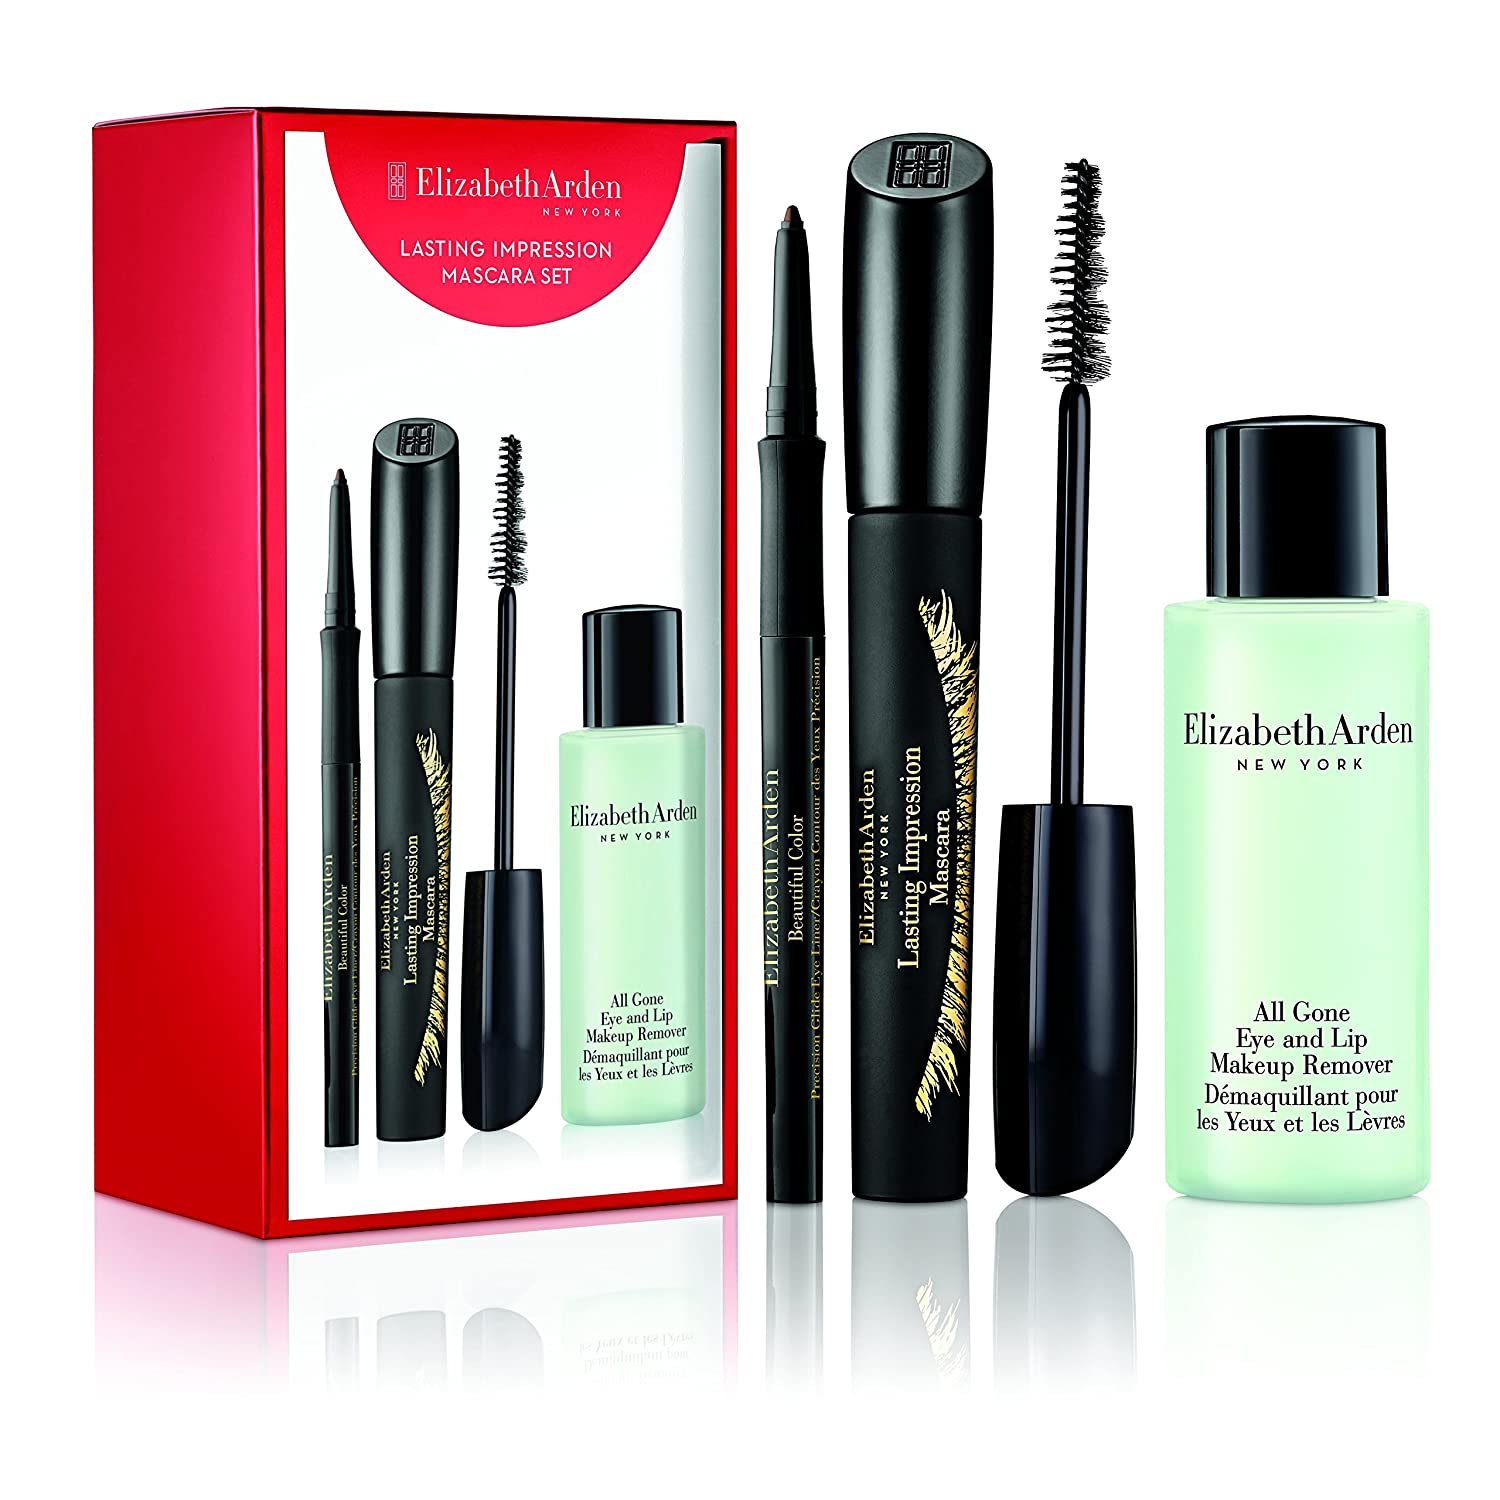 Amazon.com: Elizabeth Arden Lasting Impression Mascara Value Set: Luxury Beauty